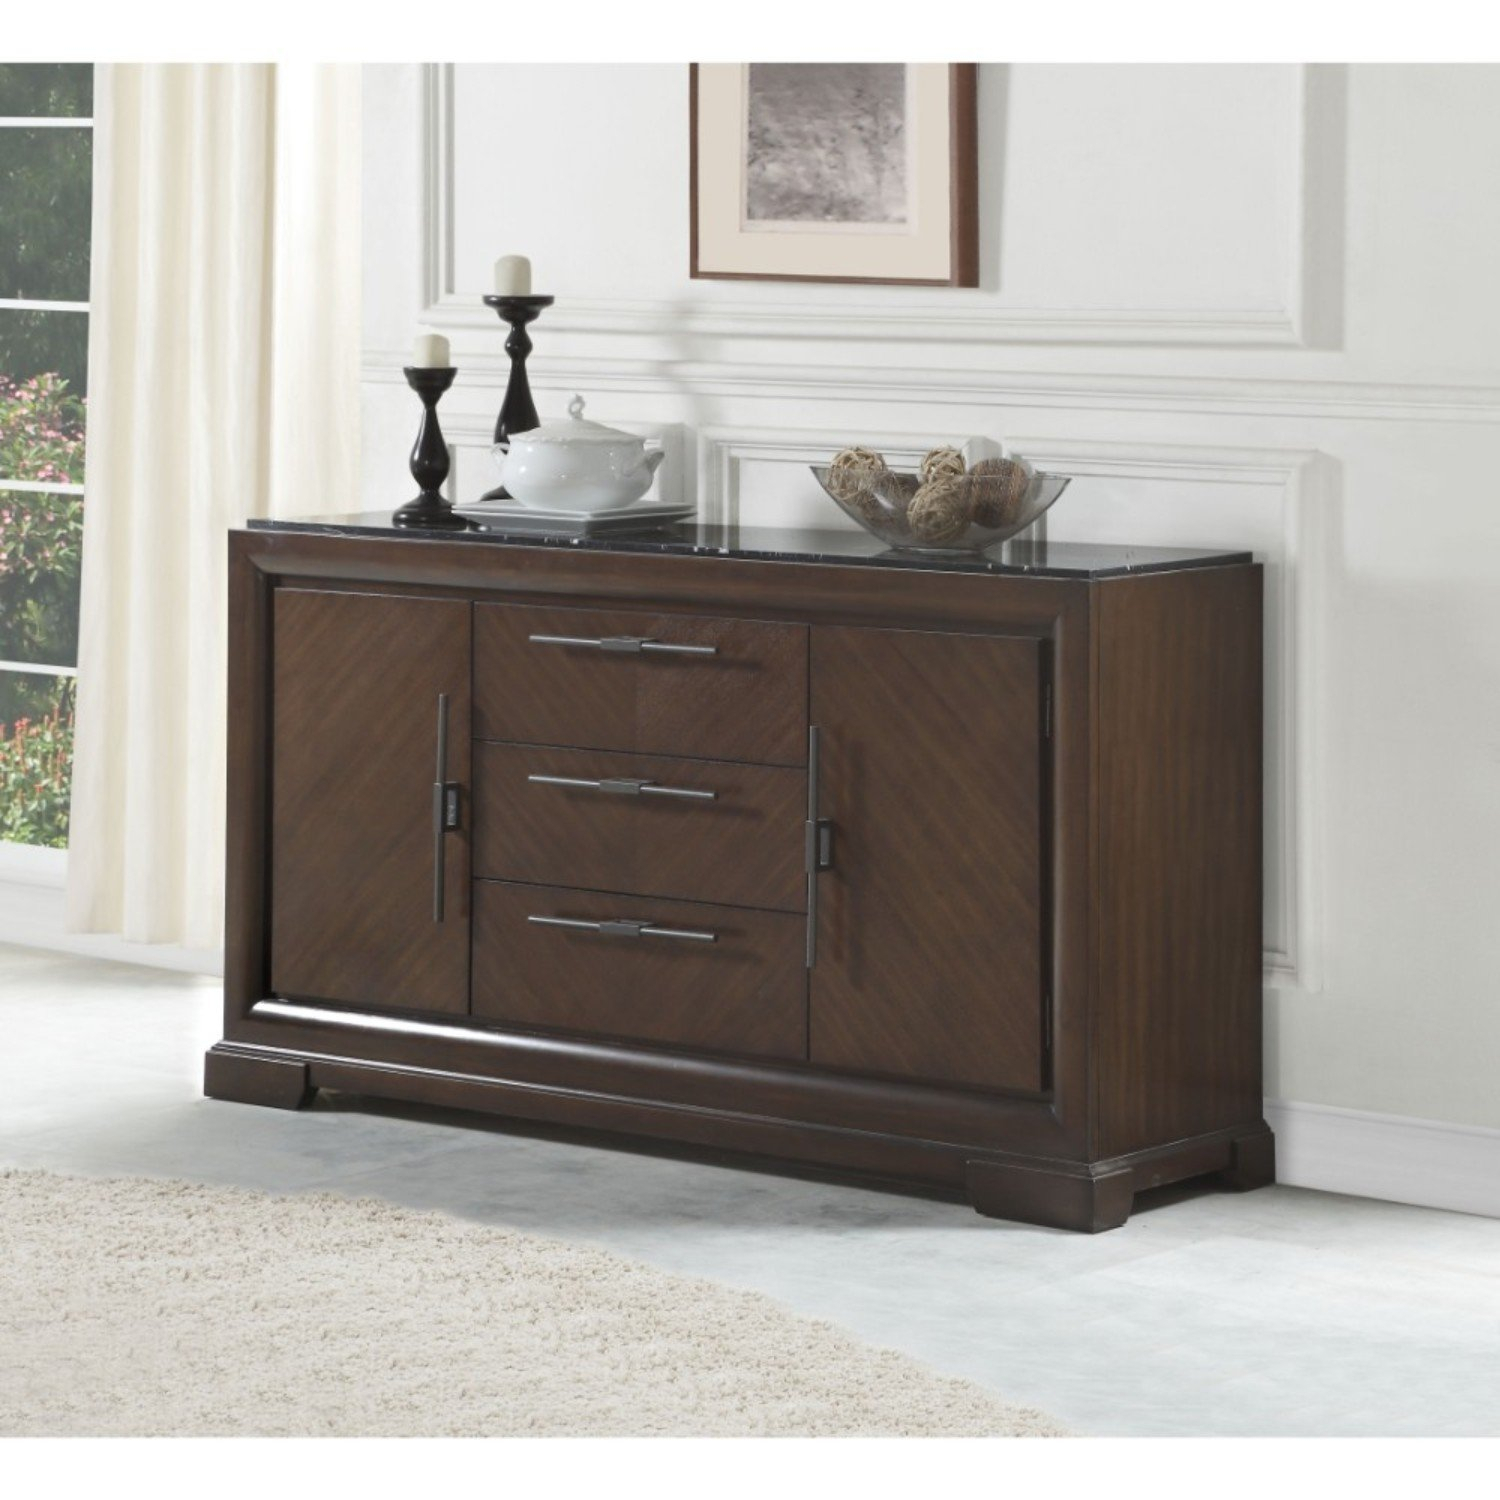 Coley Three Drawers Wooden Credenza pertaining to Colorful Leaves Credenzas (Image 6 of 30)